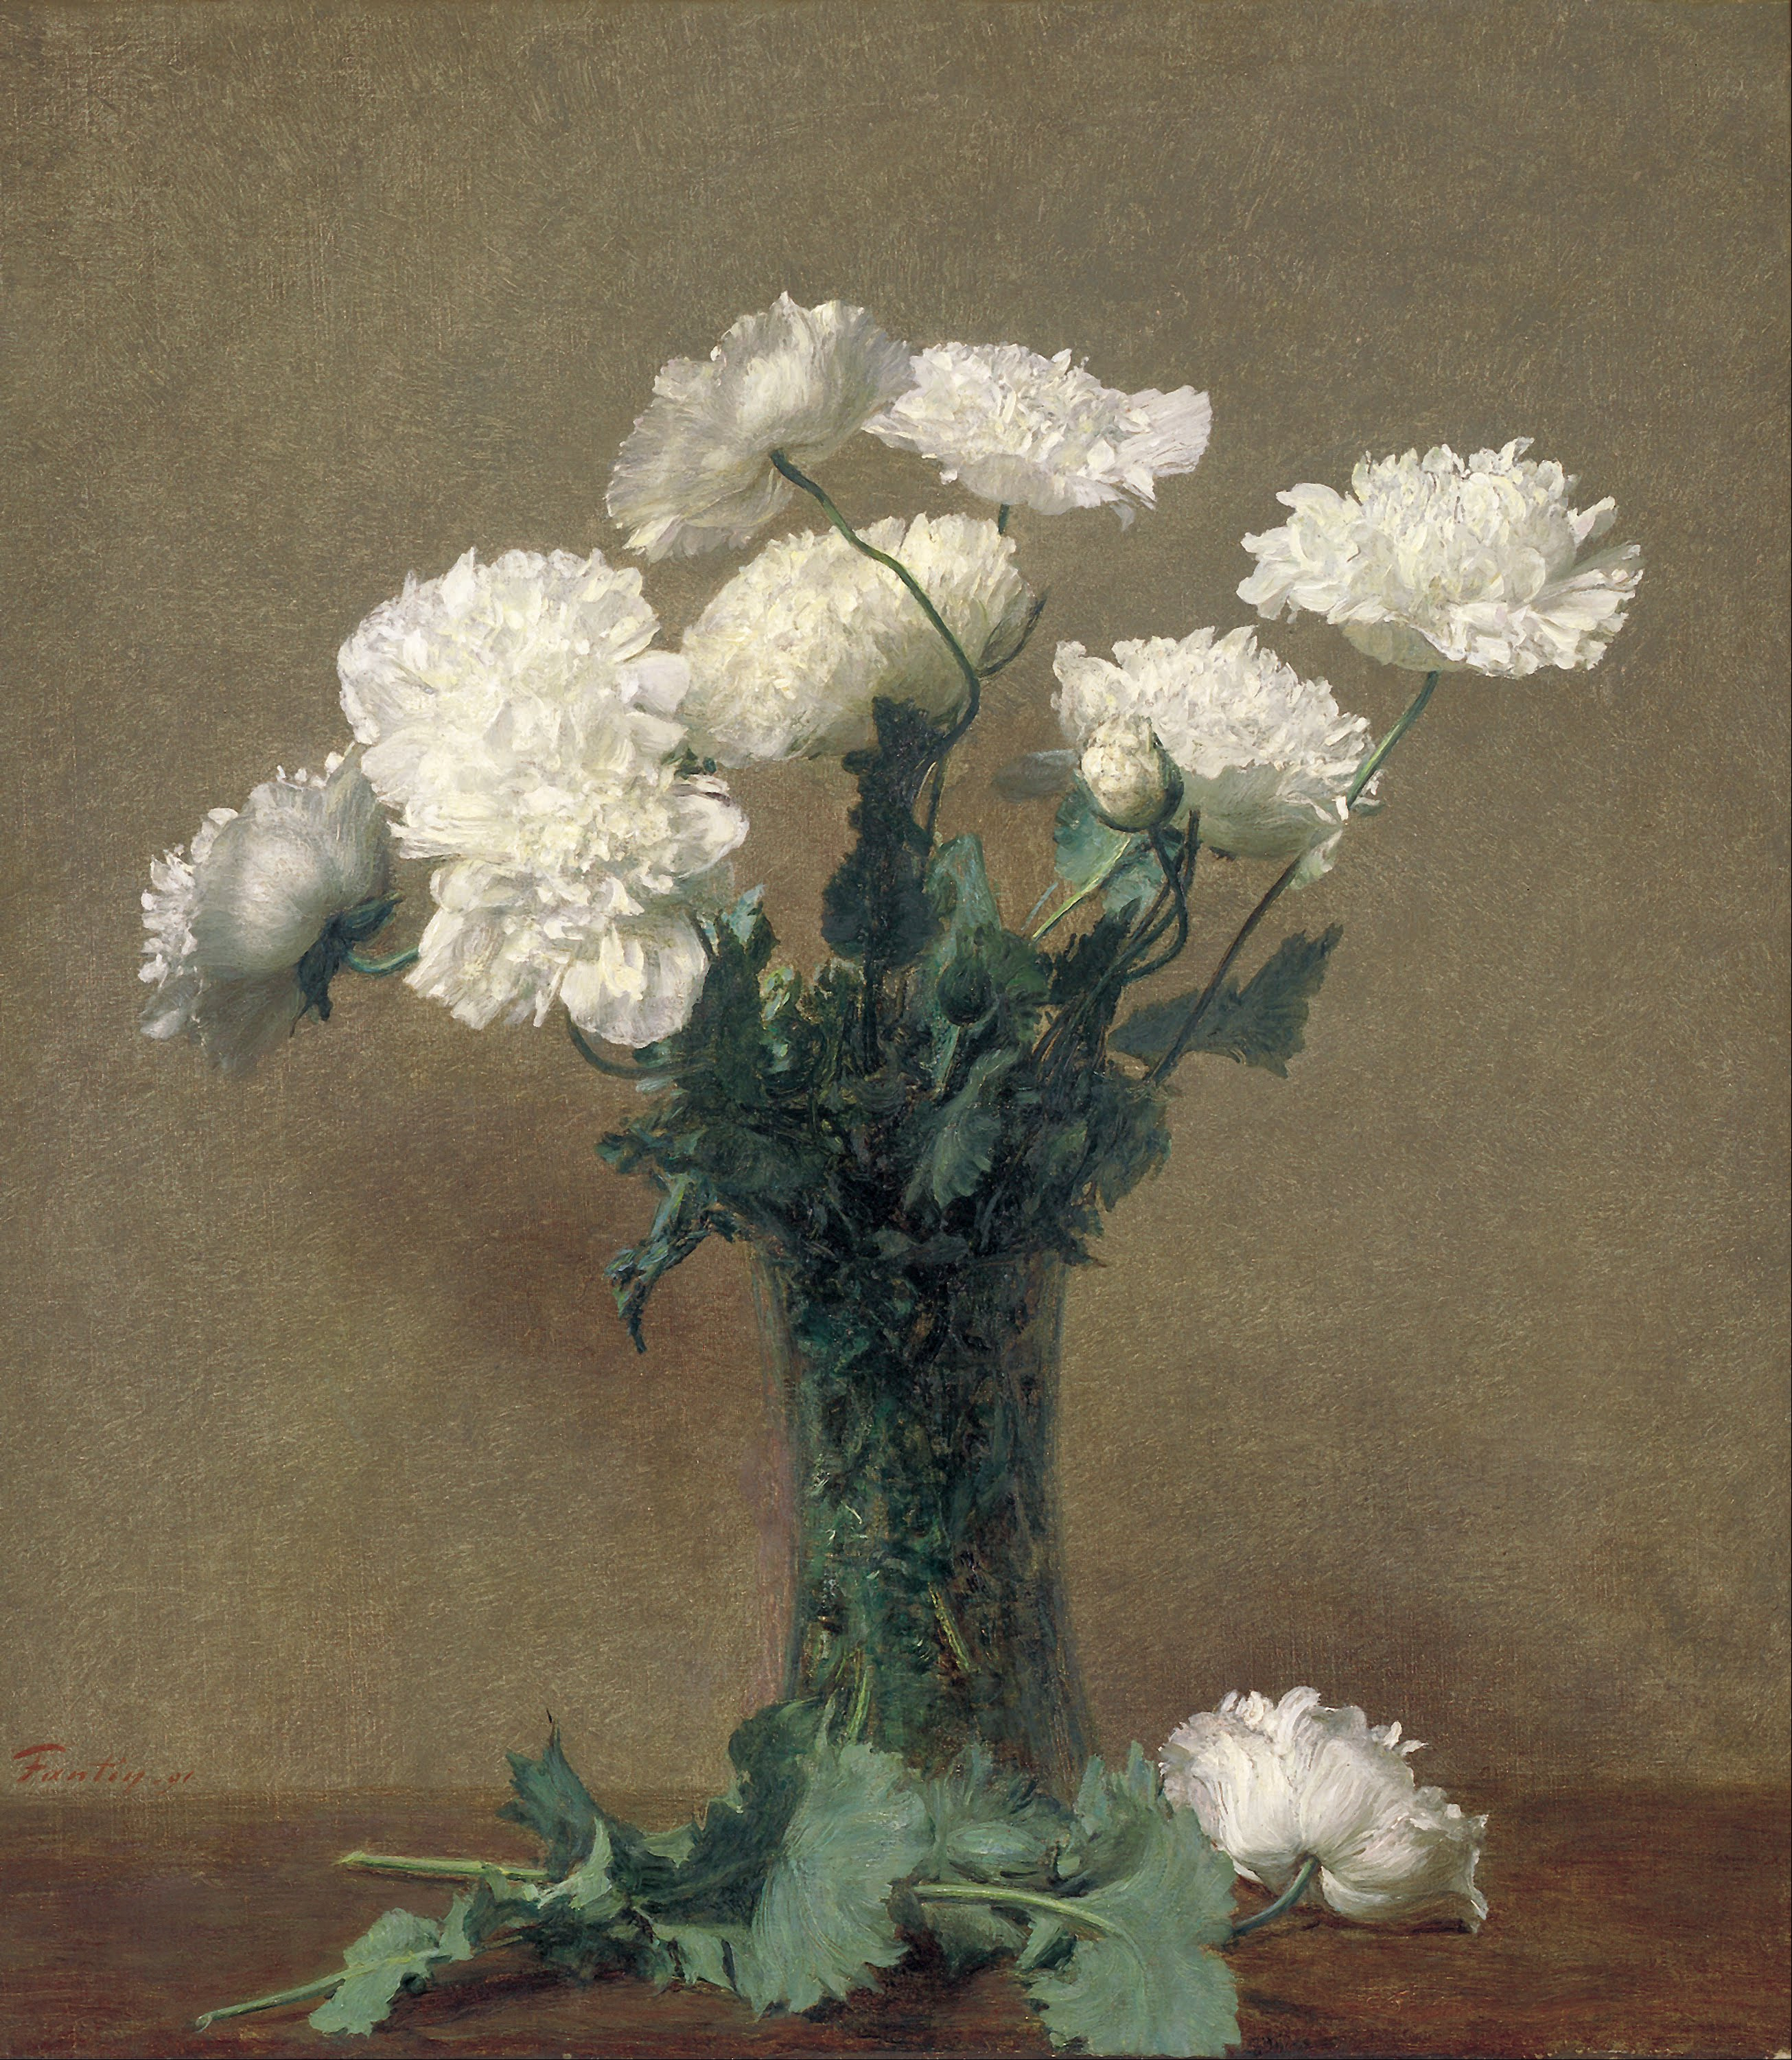 Poppies, by Henri Fantin-Latour, 1891